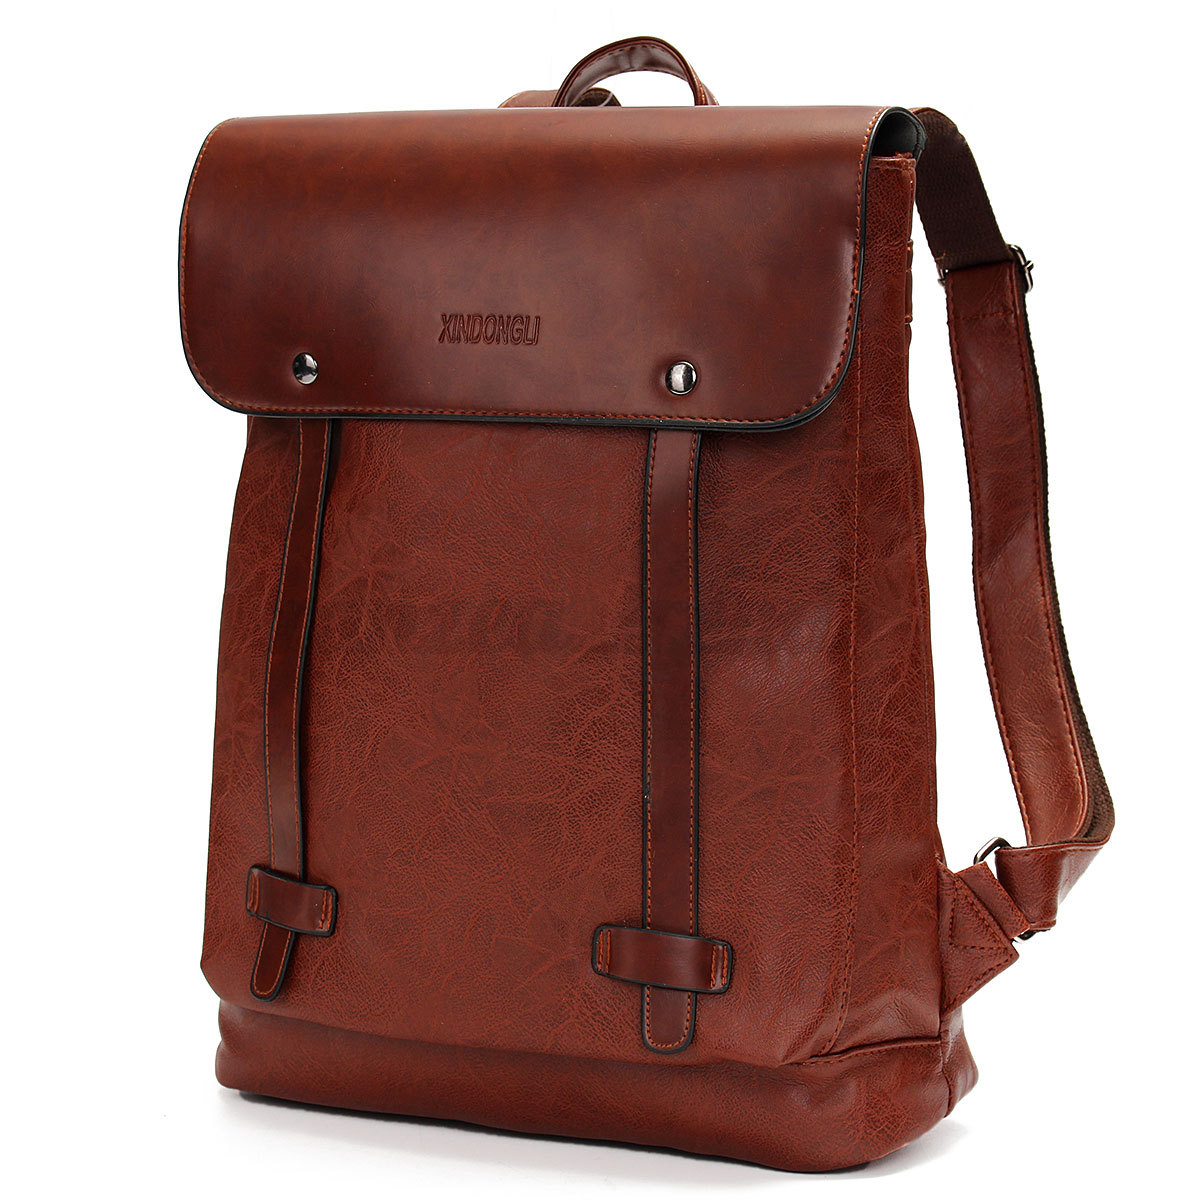 98ab2a1703d4 Leather Backpack Bag Uk | Stanford Center for Opportunity Policy in ...